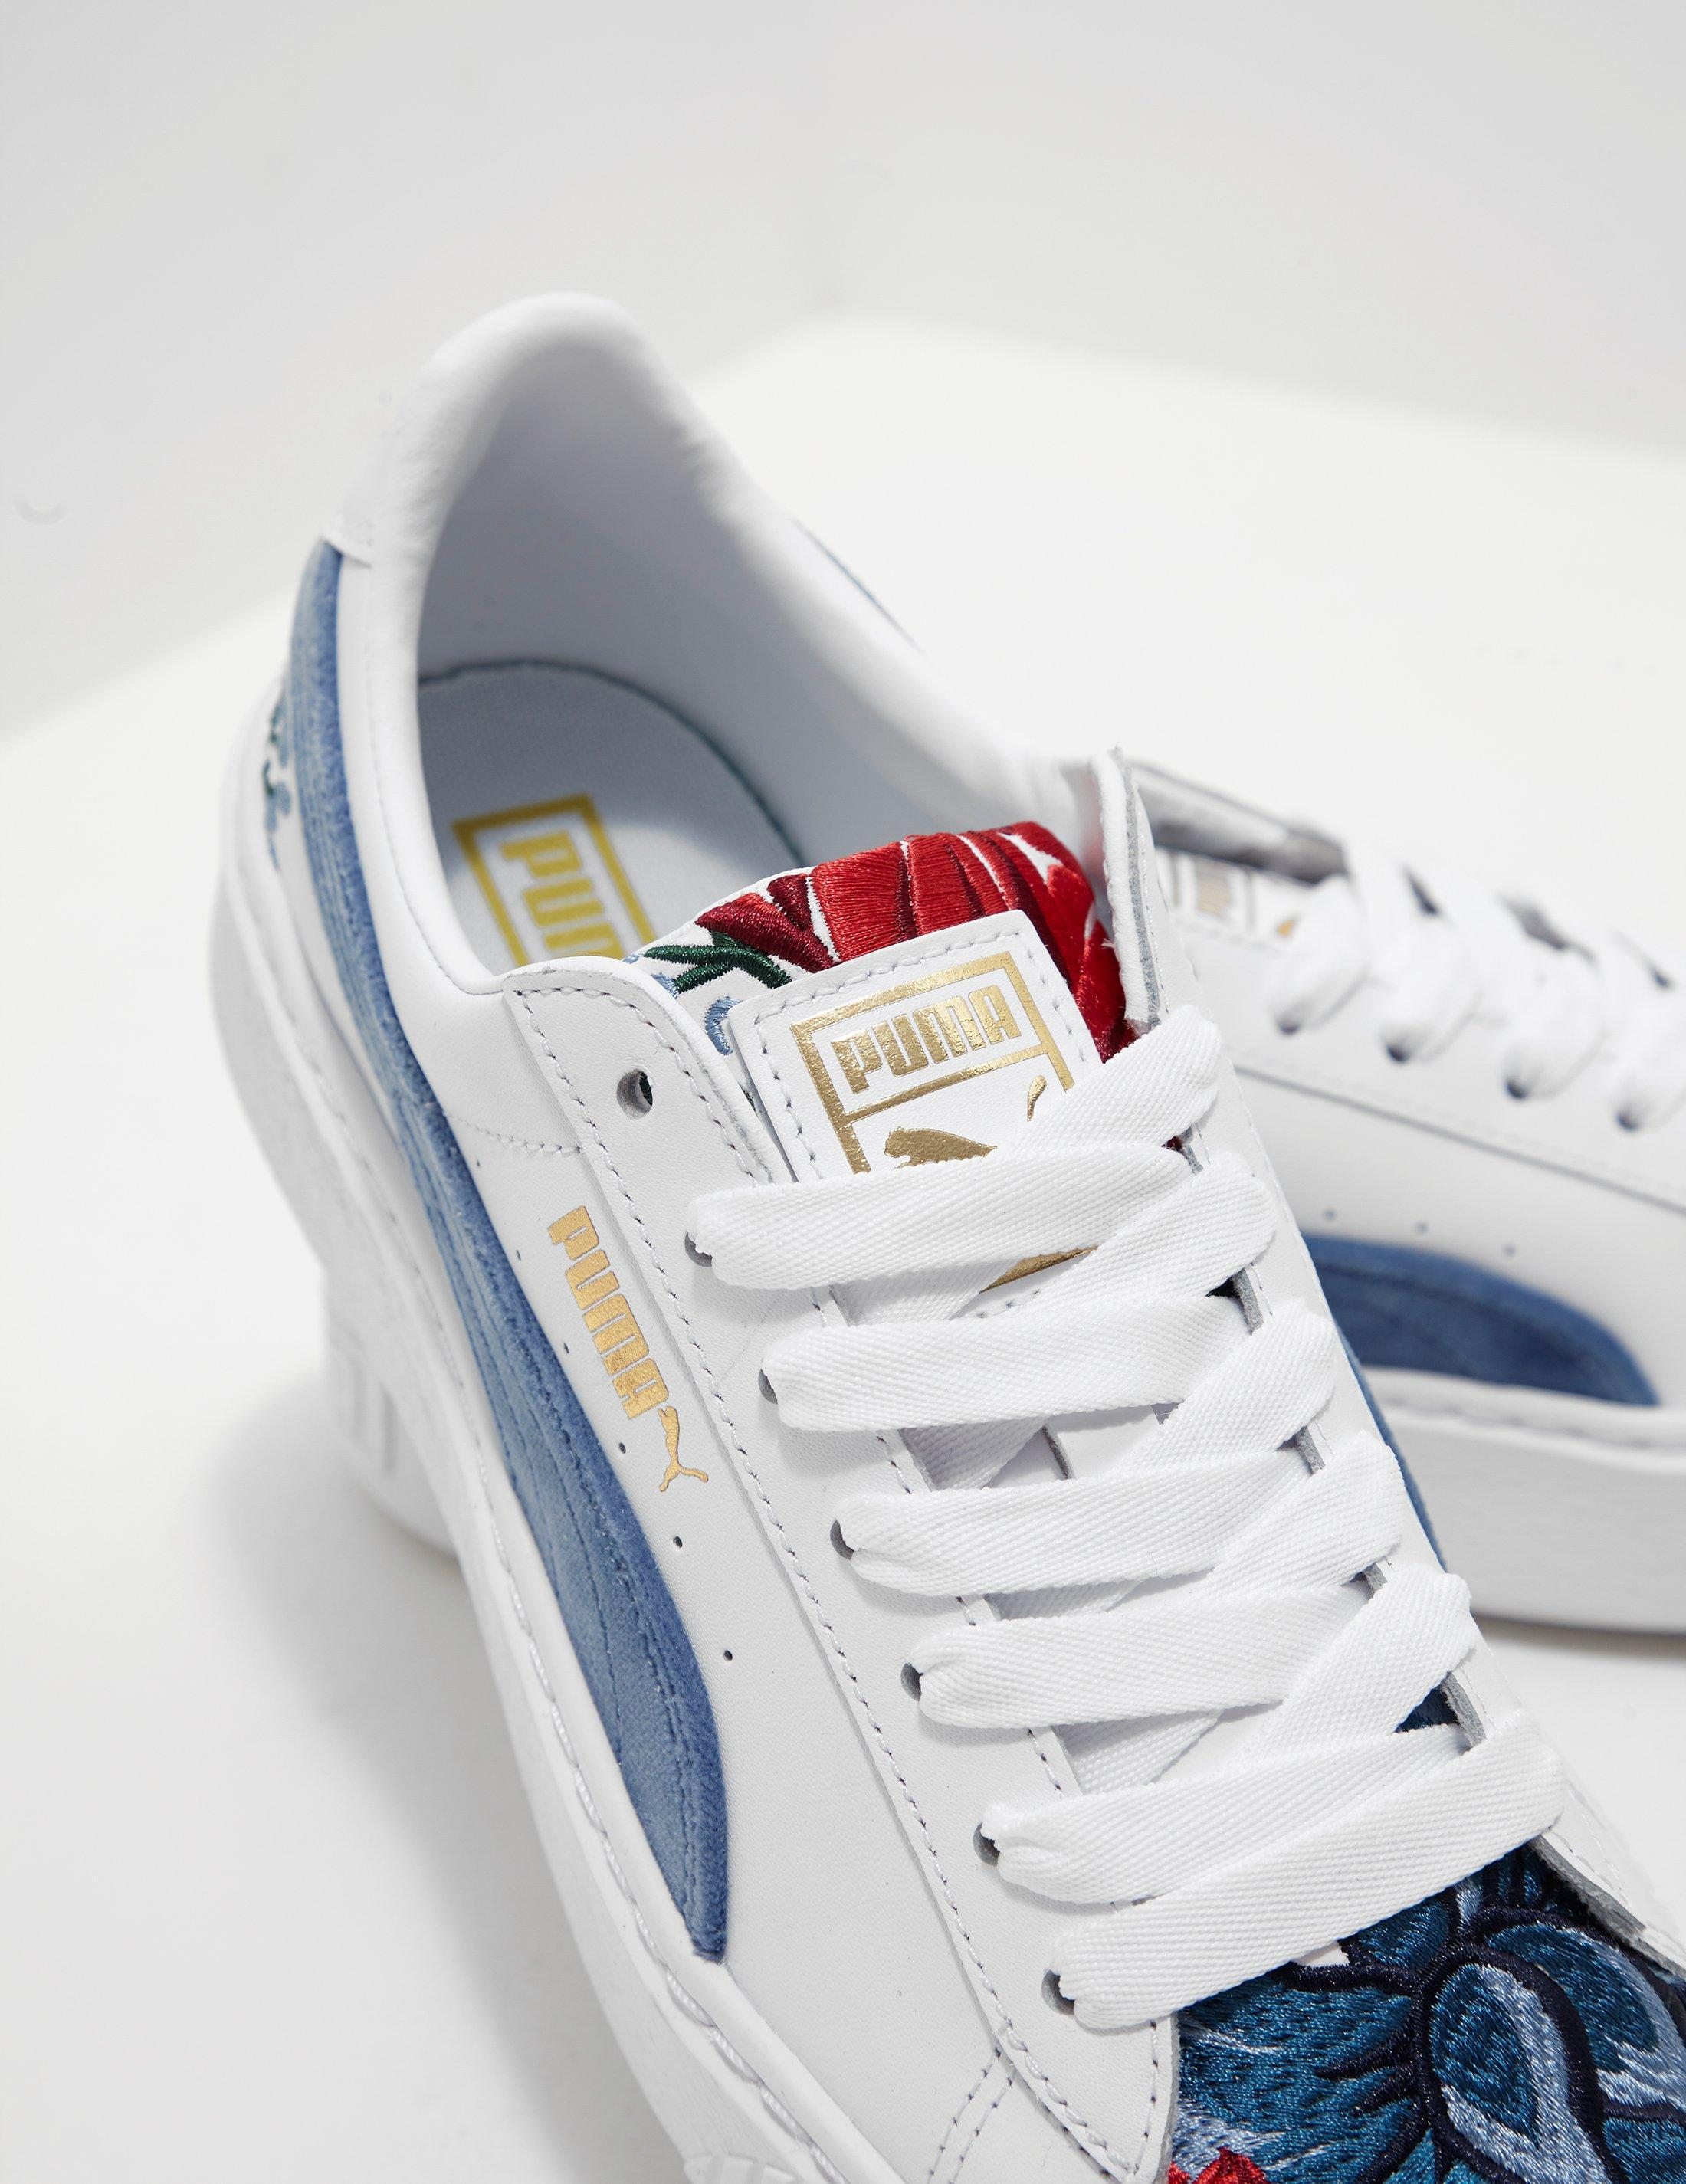 7dc6a9abaa9 Lyst - Puma Womens Embroidered Platform Suede - Online Exclusive White in  White - Save 40.140845070422536